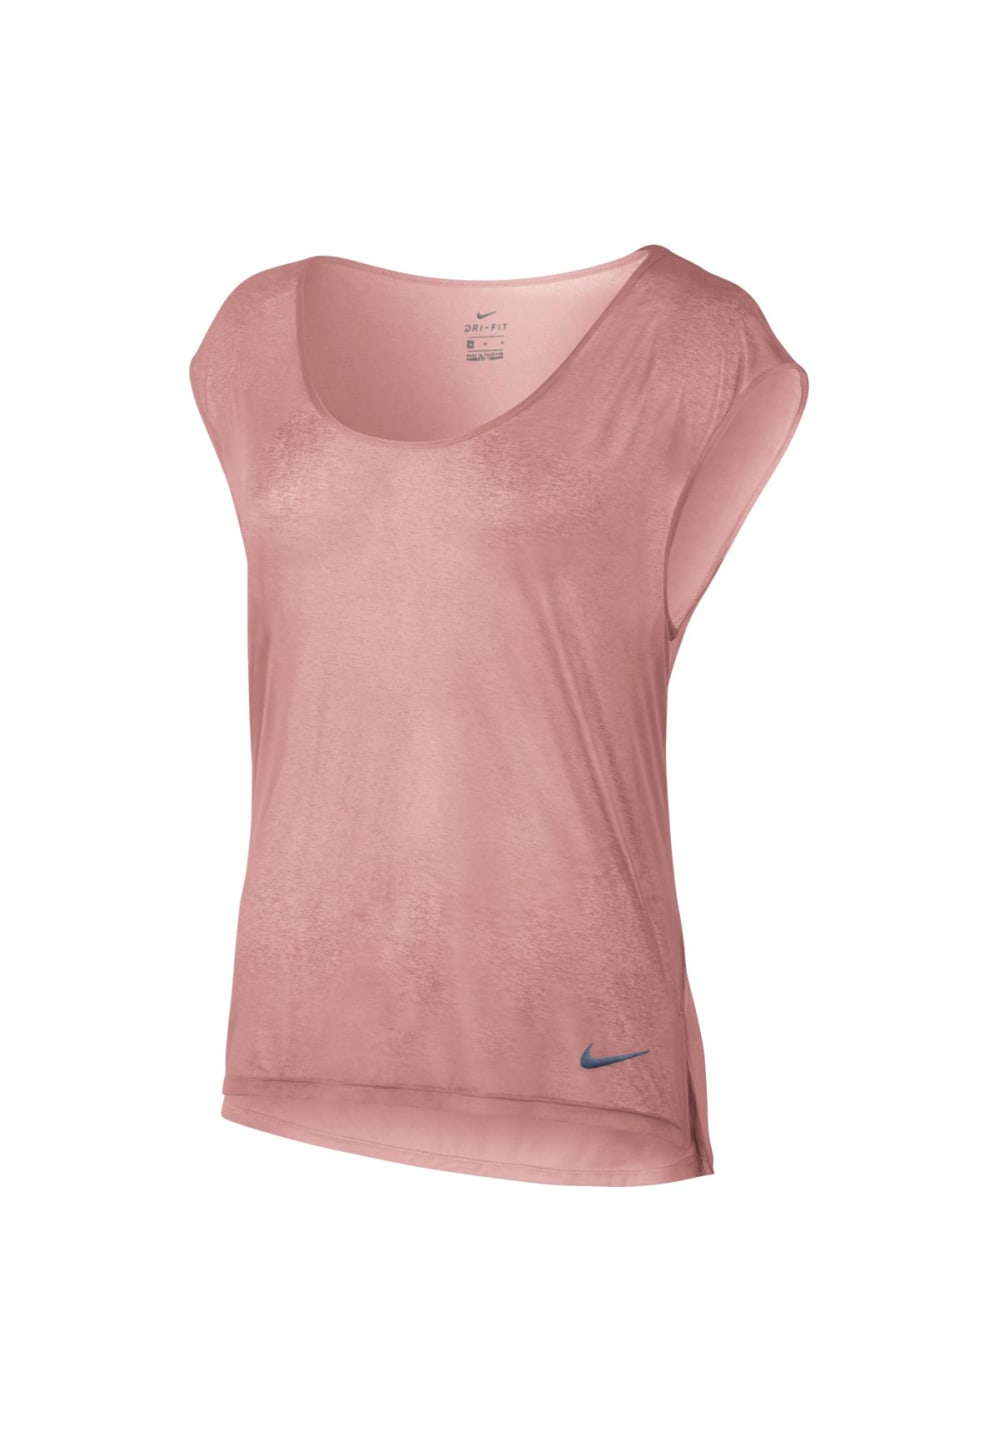 edee234371b2c ... Nike Breathe Running Top - Running tops for Women - Pink. Back to  Overview. 1  2. Previous